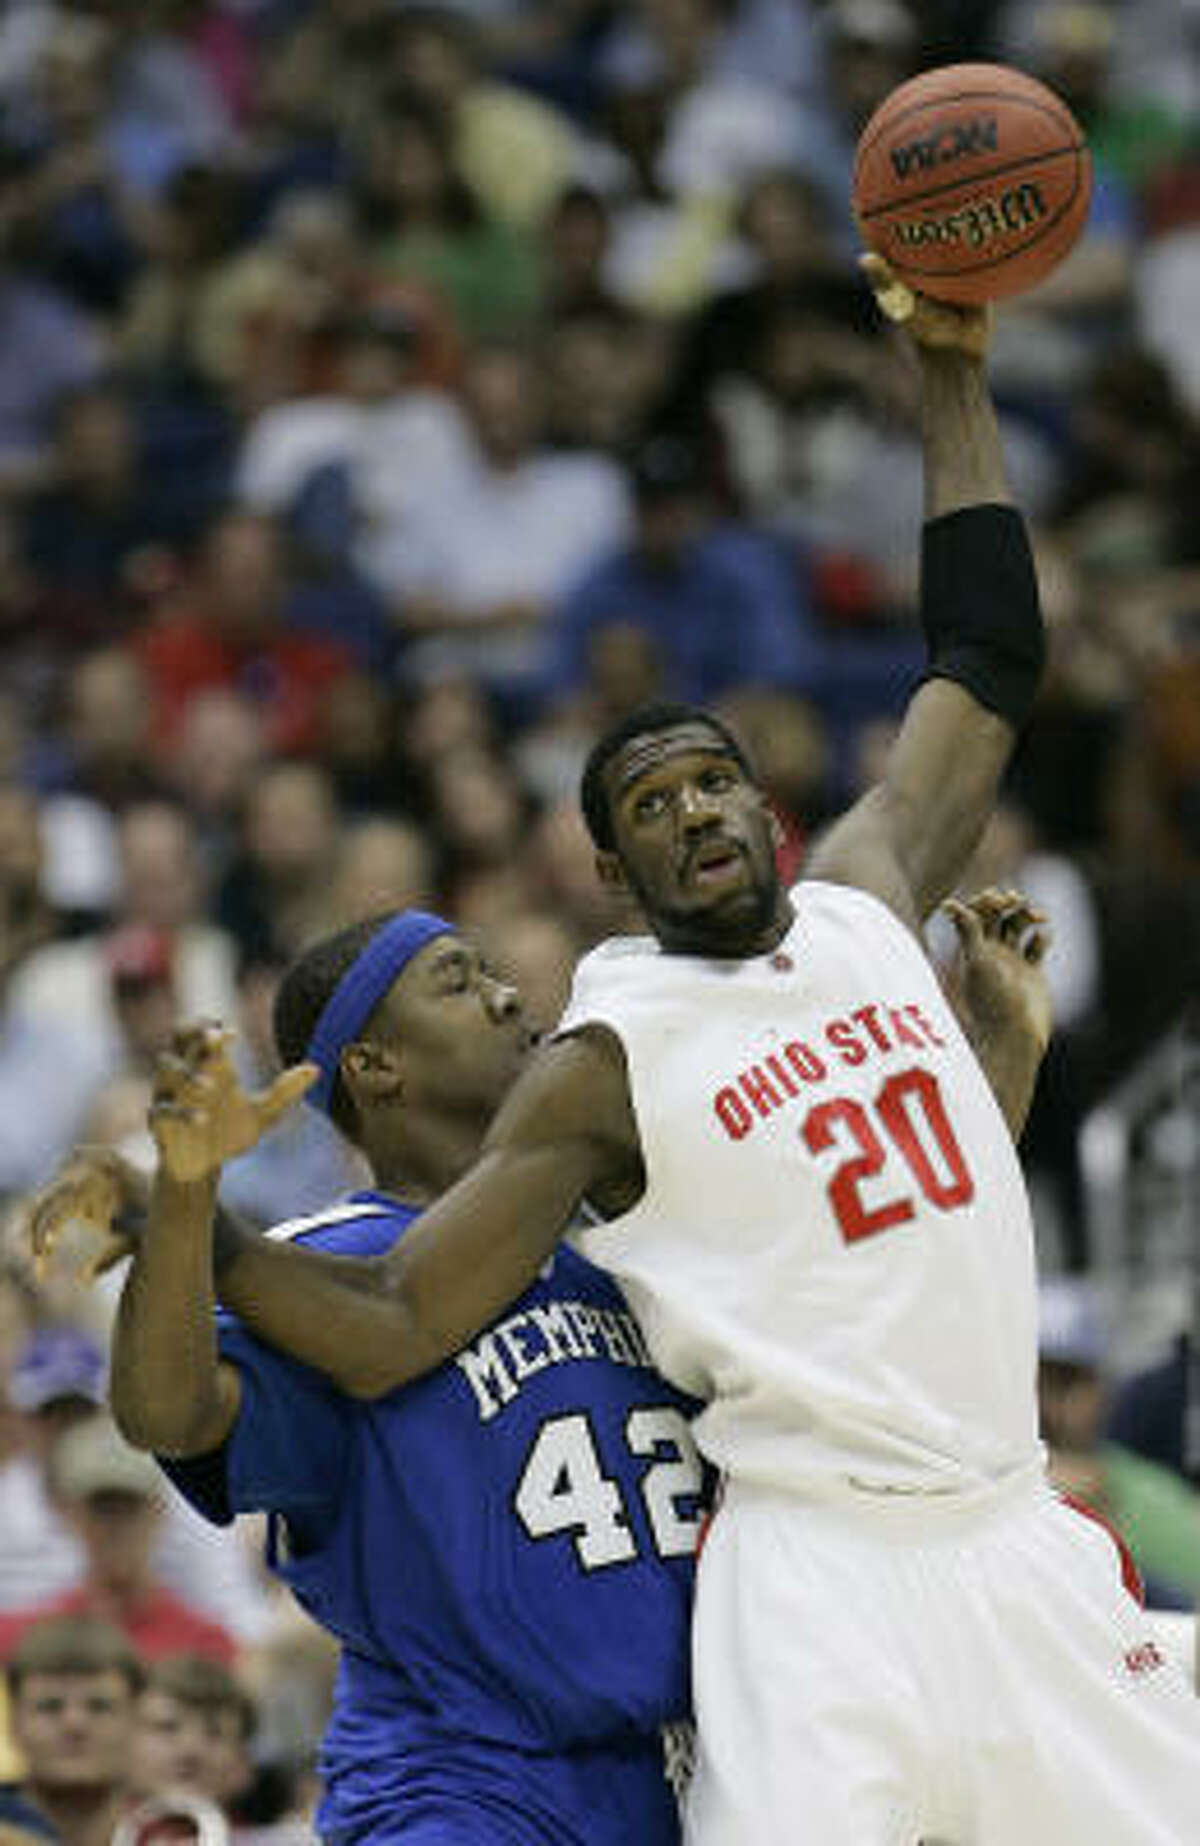 Ohio State center Greg Oden would make a fine consolation prize for a team that doesn't make the playoffs.